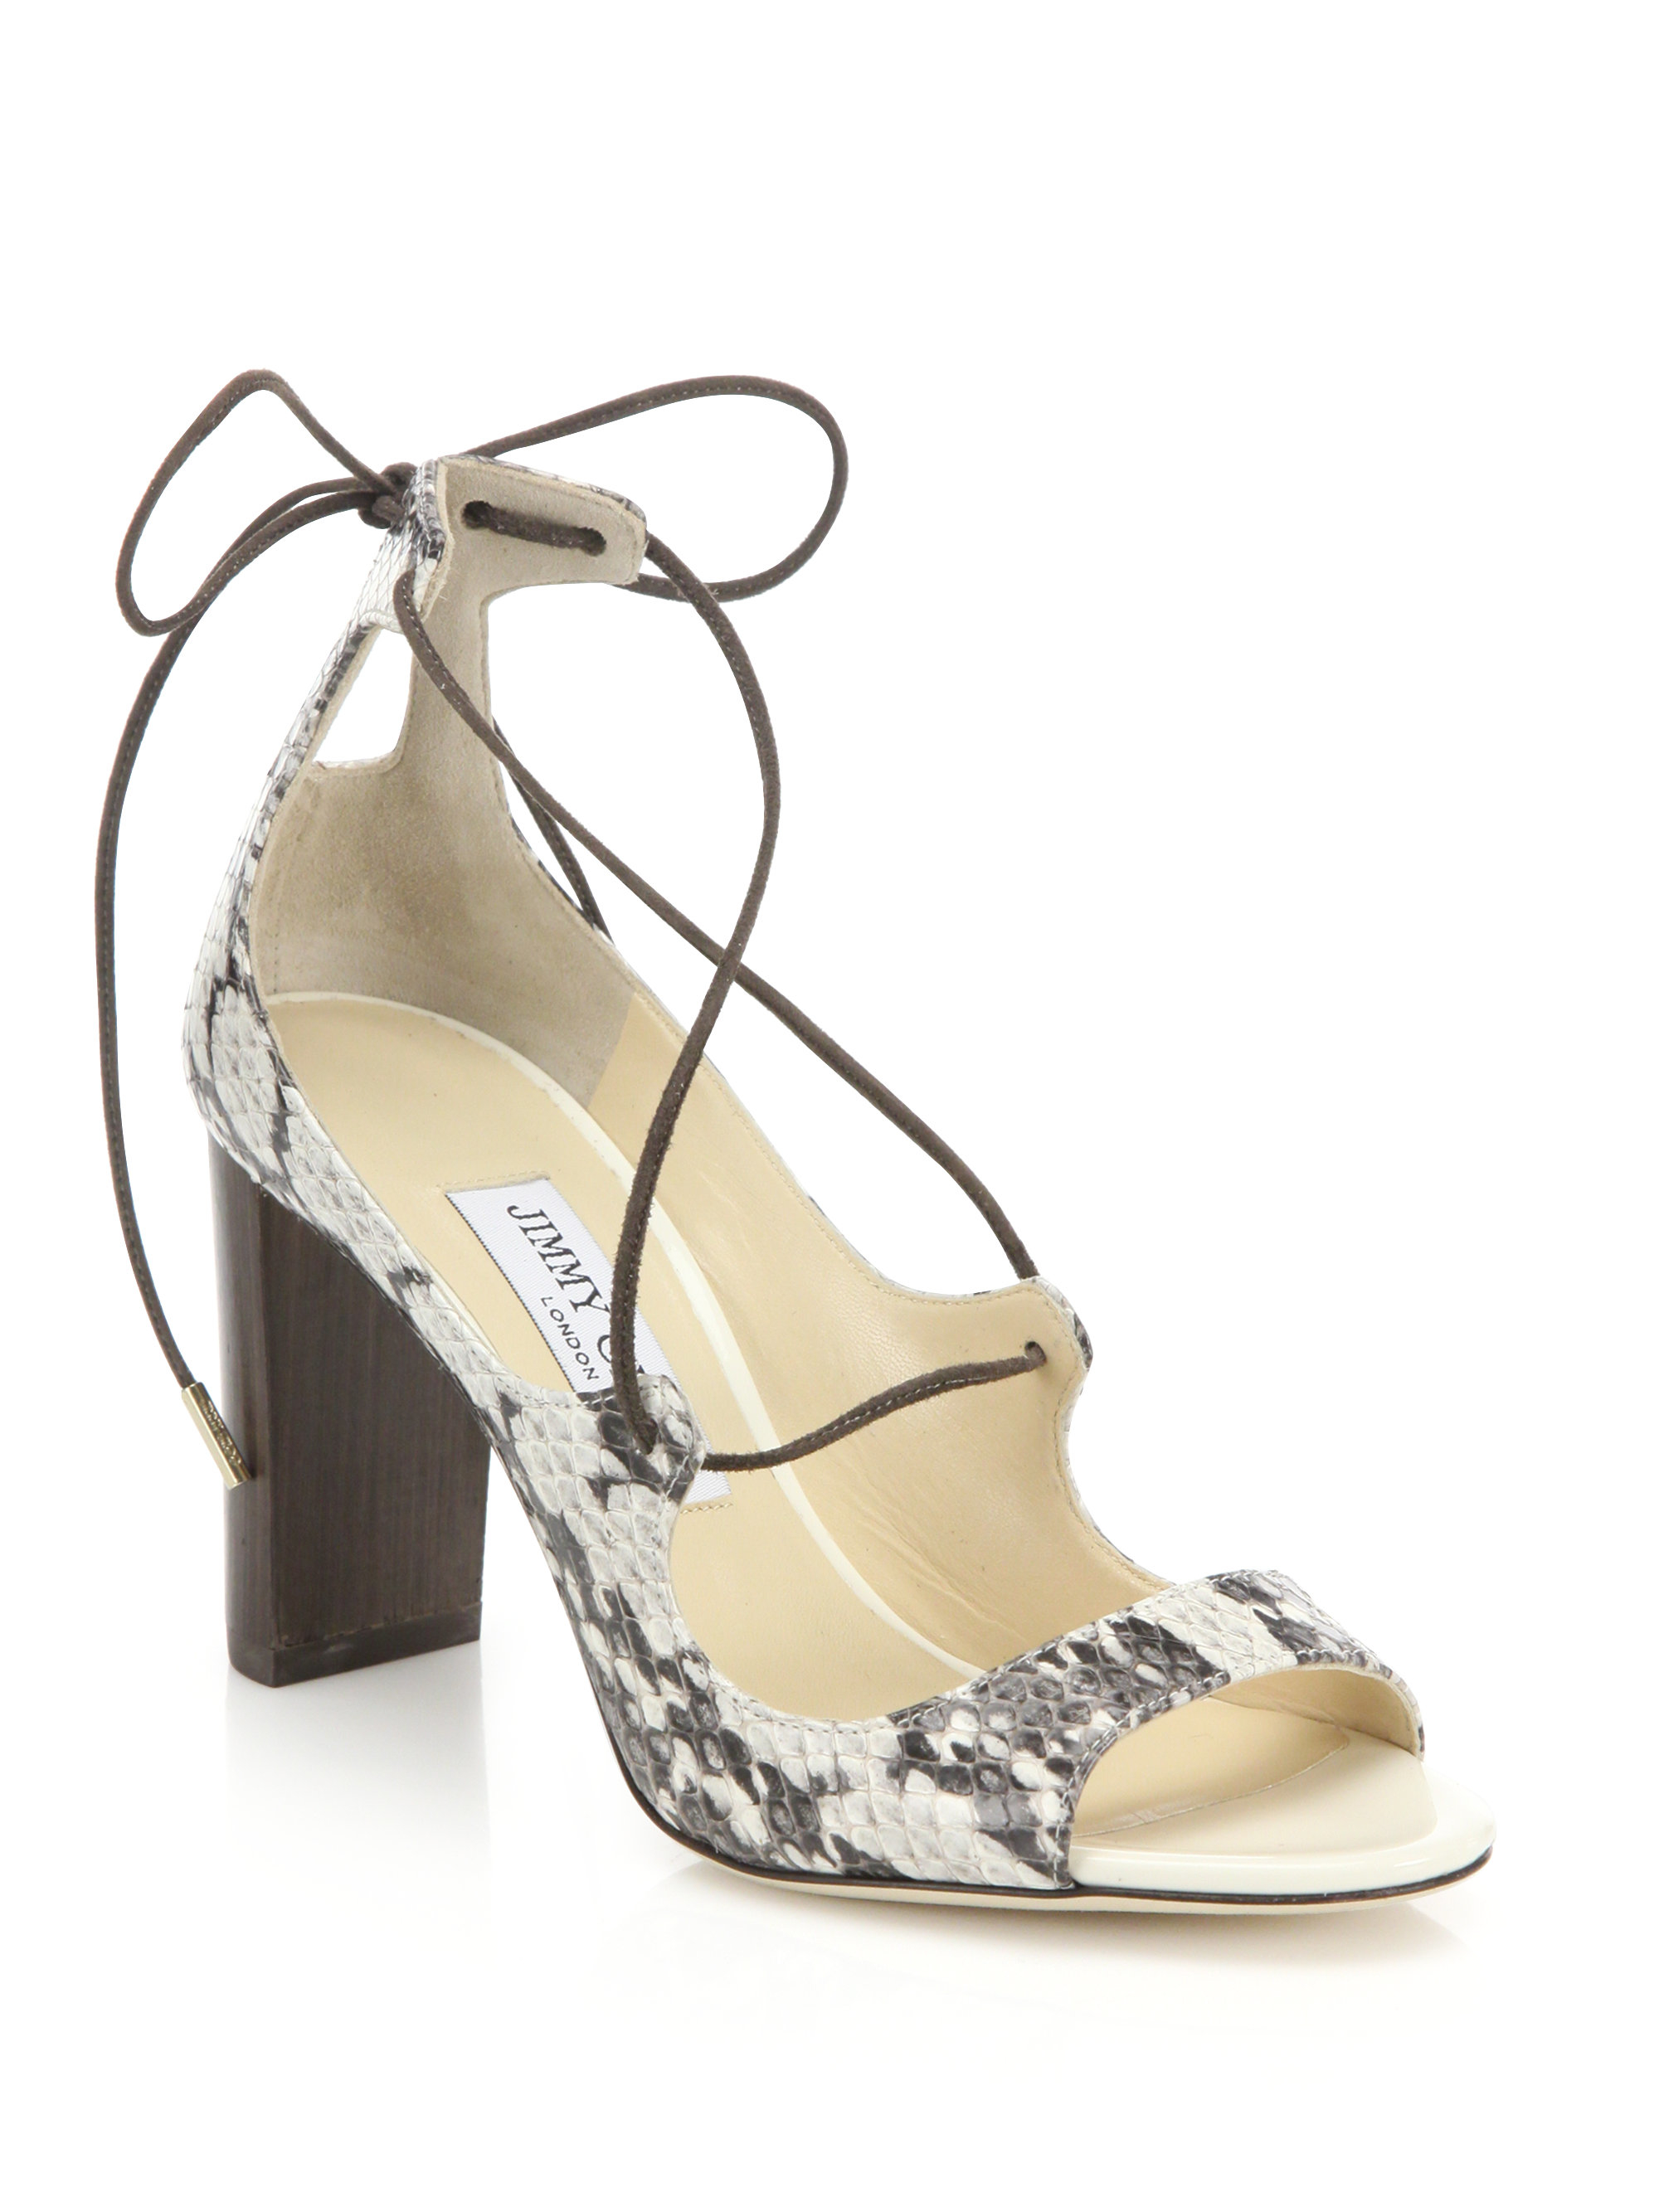 Jimmy Choo Snakeskin Wrap-Around Sandals cheap recommend new styles cheap online sale find great discount brand new unisex Aaoiw